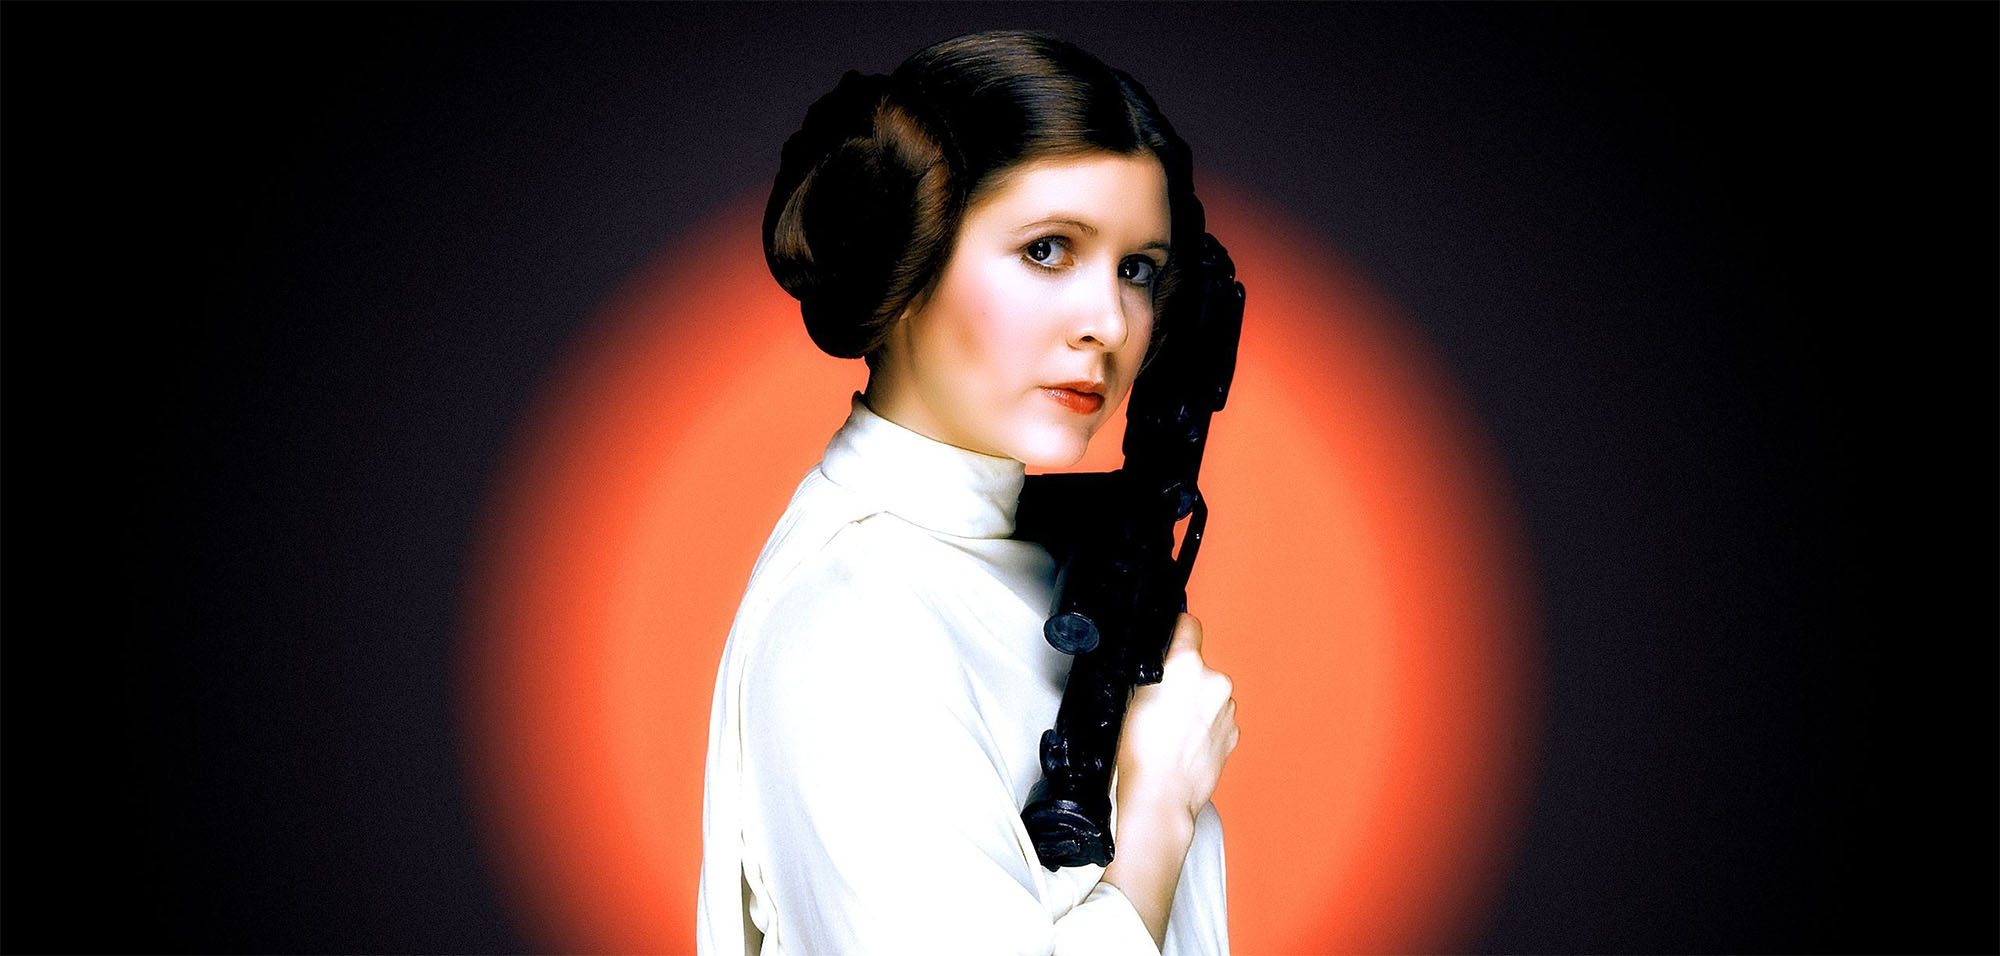 All the times Princess Leia was a total boss in 'Star Wars'